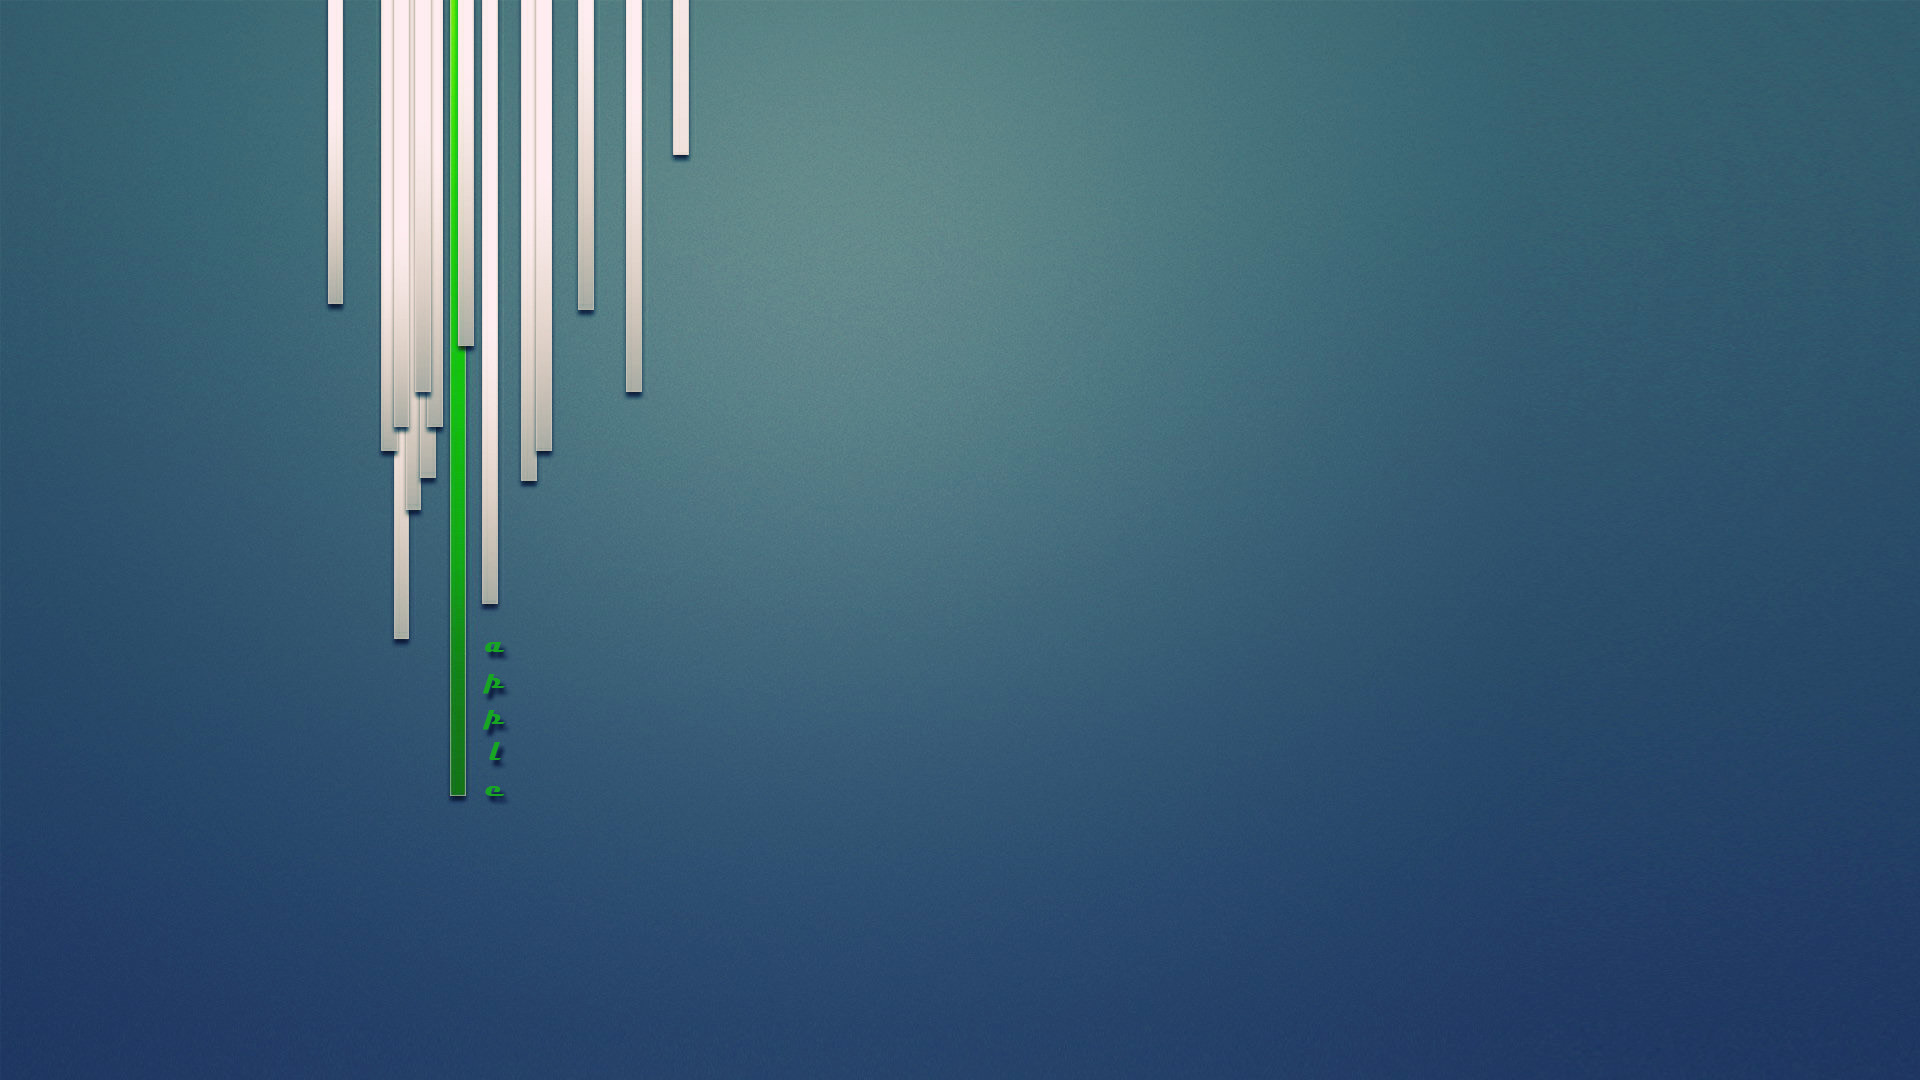 Security Desktop Wallpaper